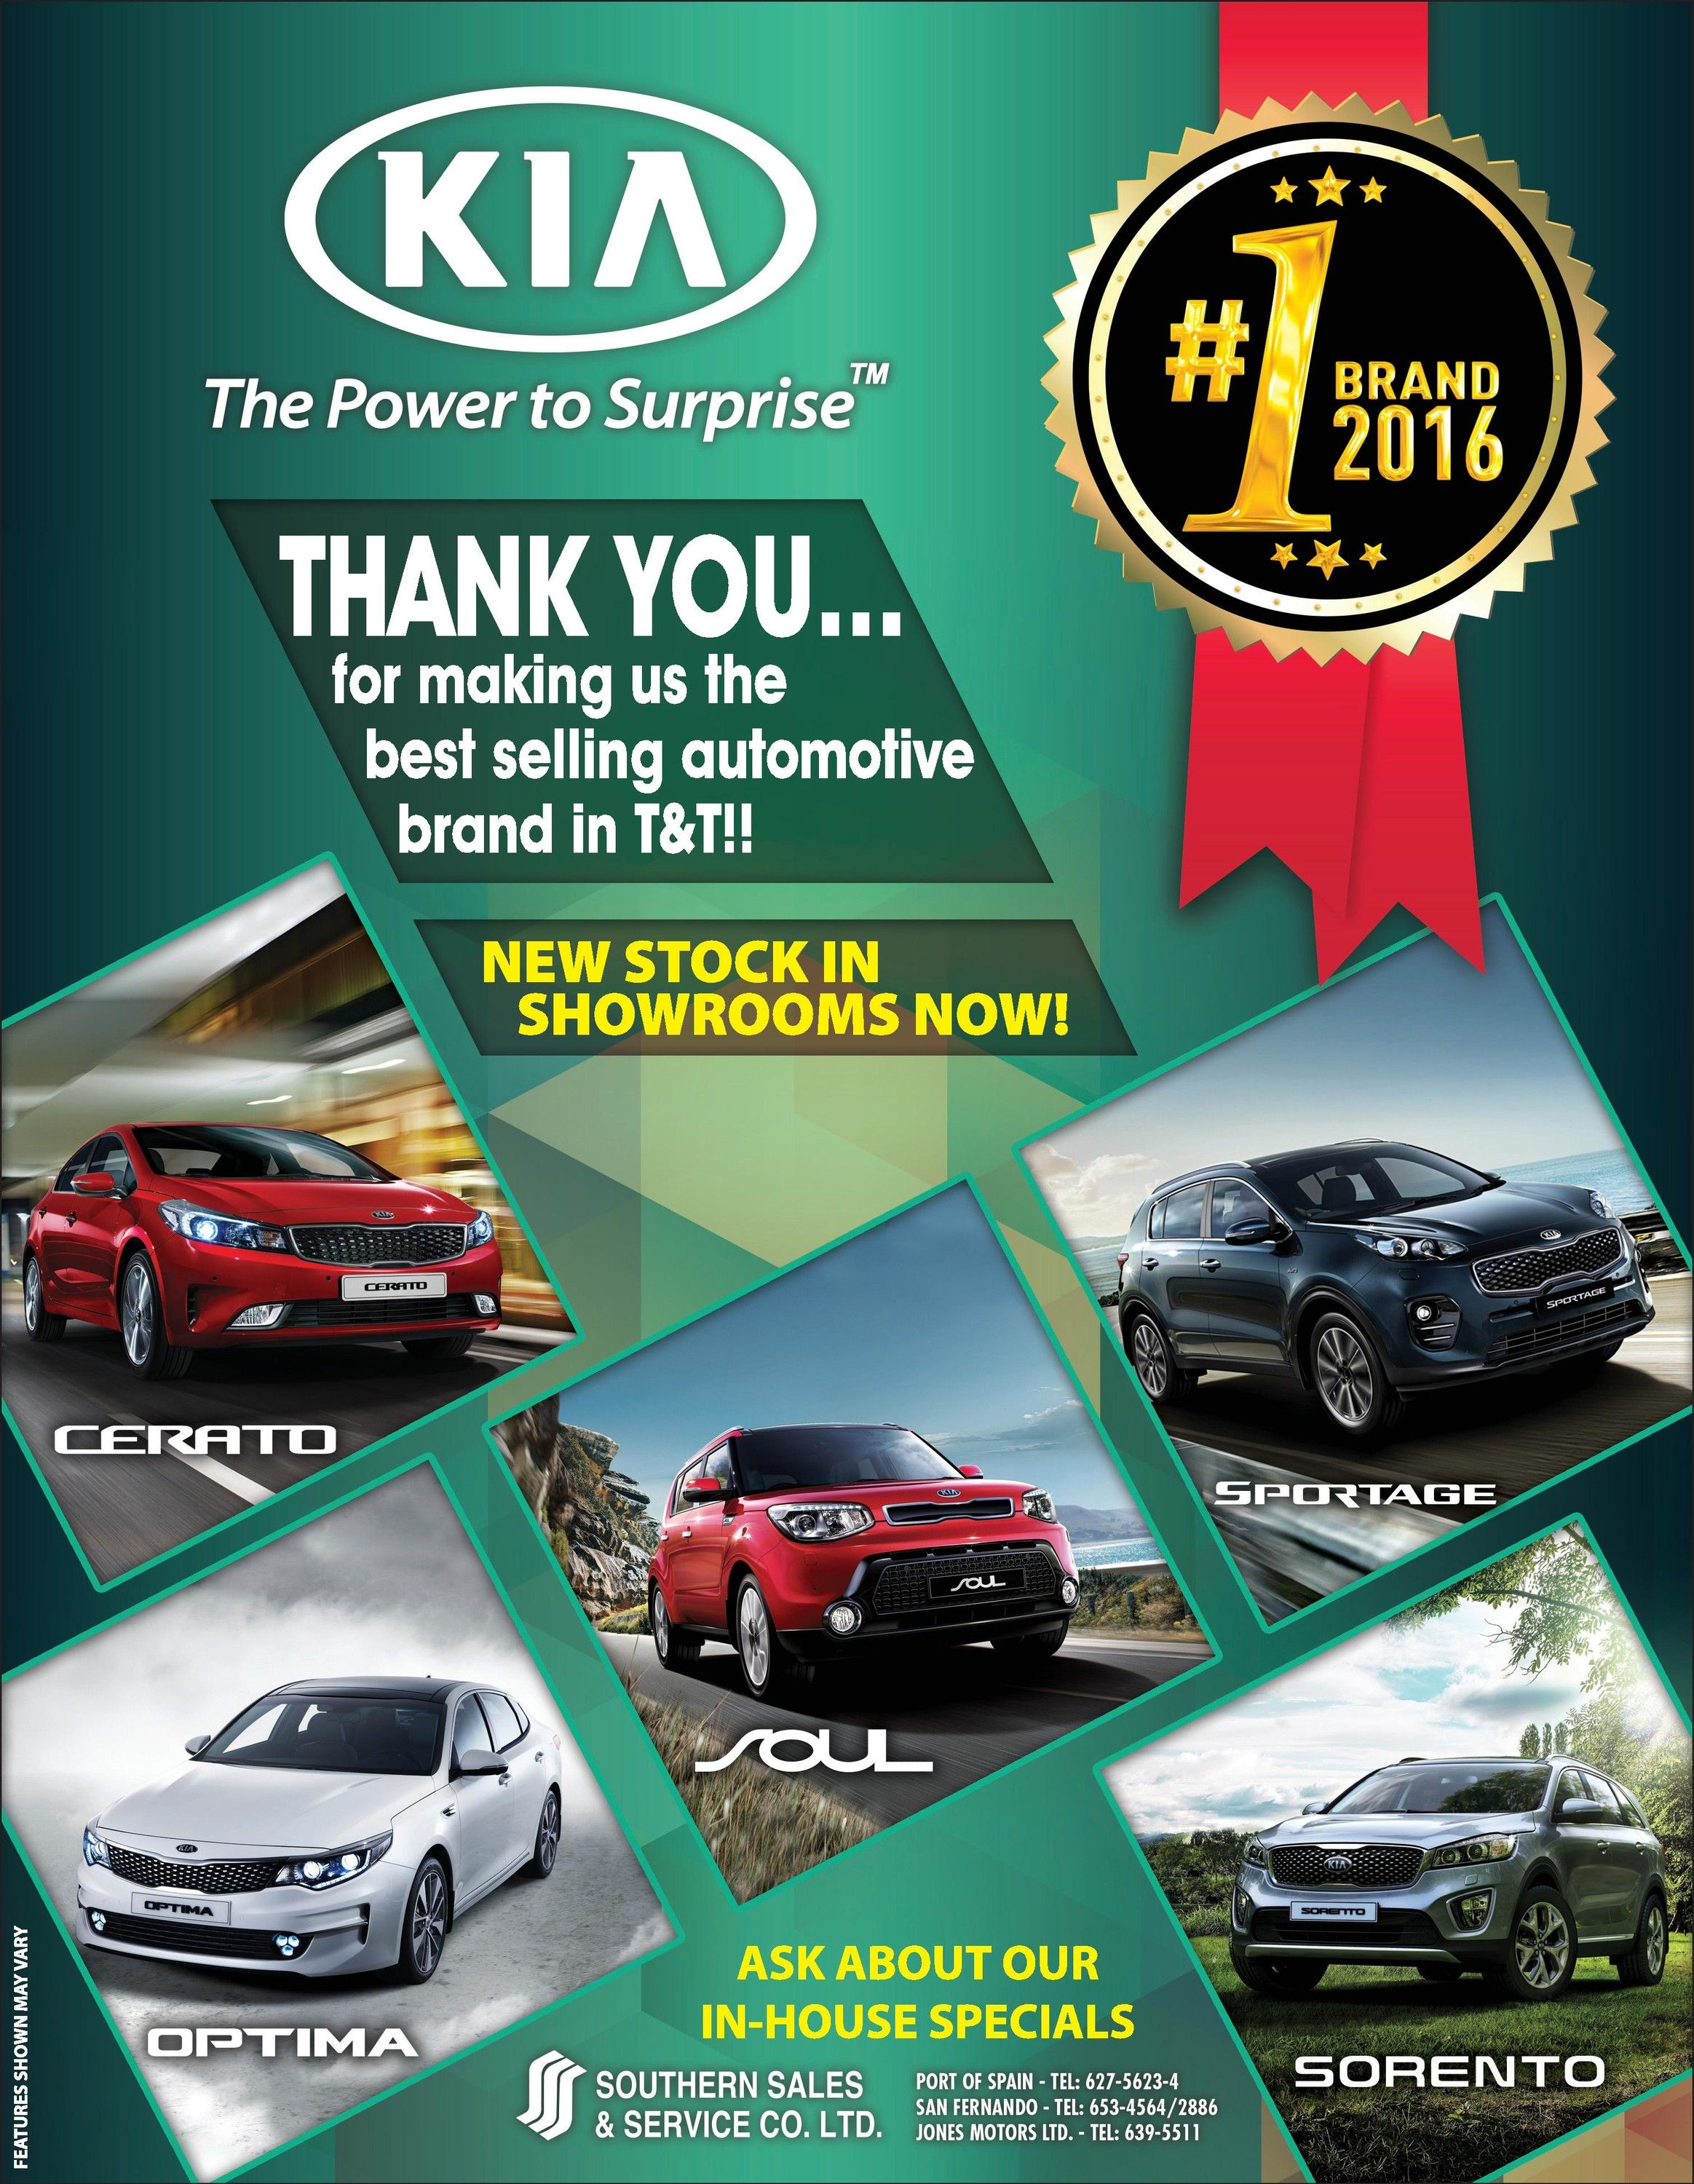 KIA is the number one selling brand for in Trinidad and Tobago